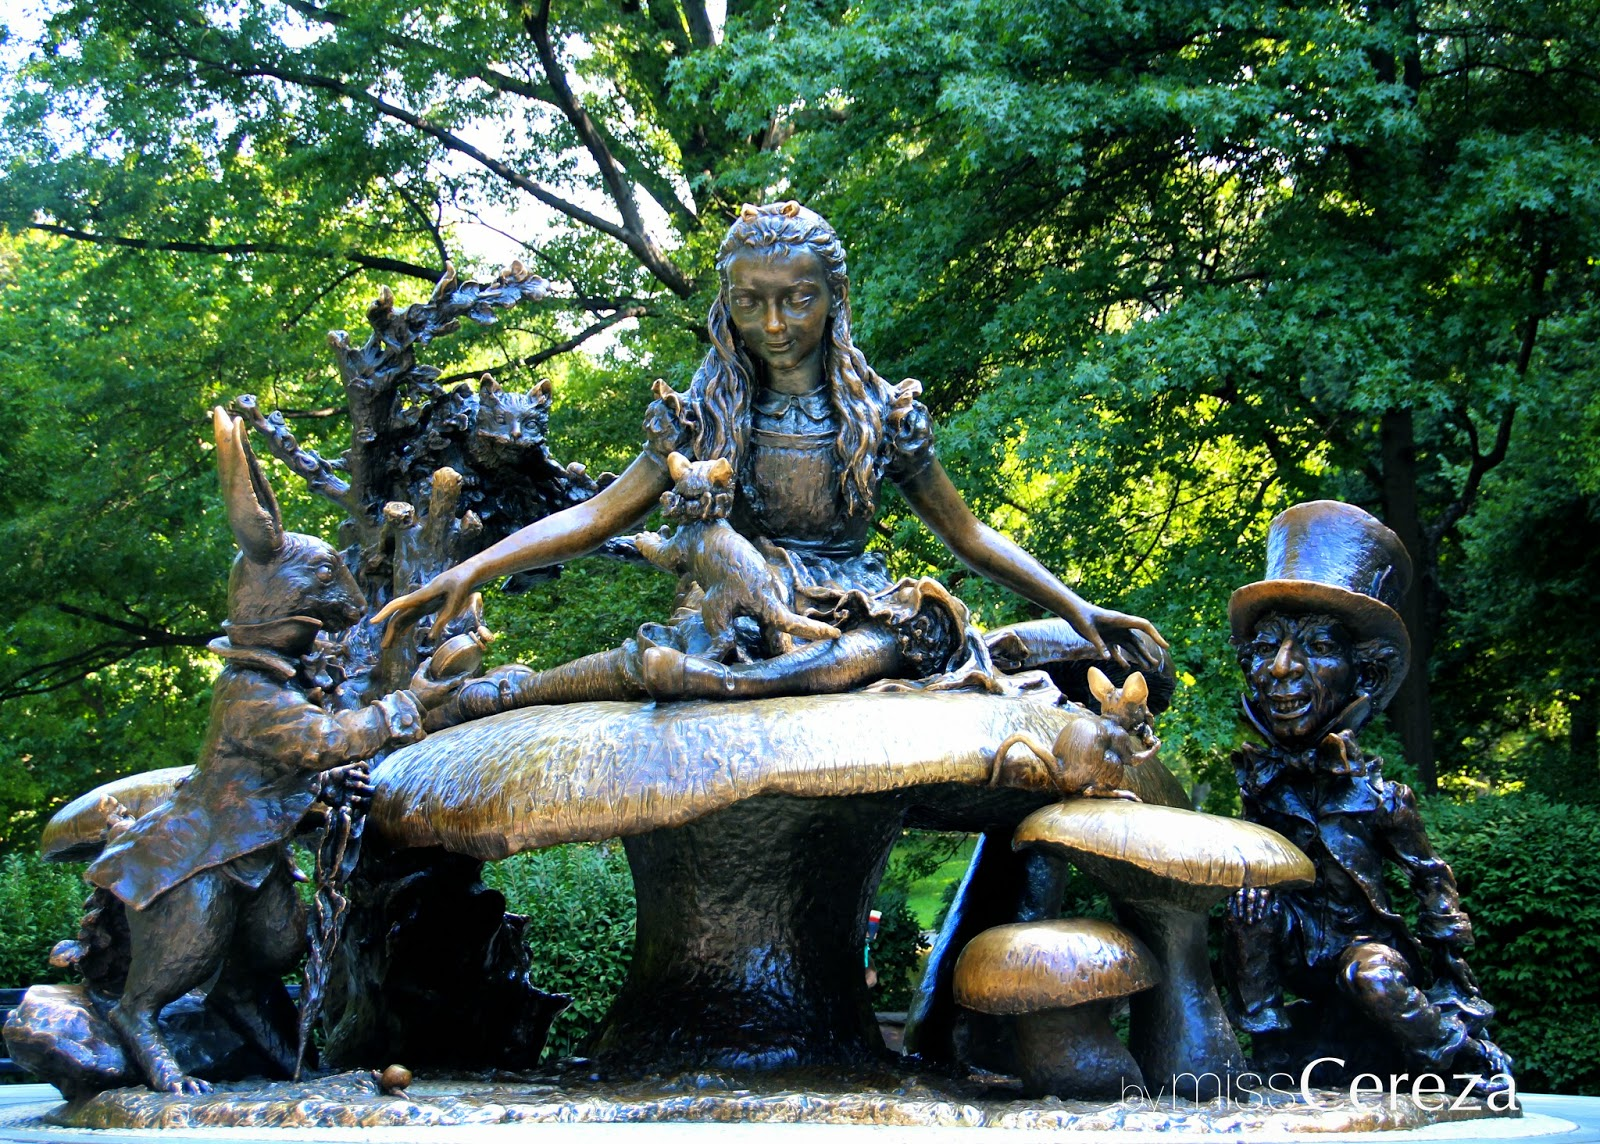 Alice in wonderland, central park, NY